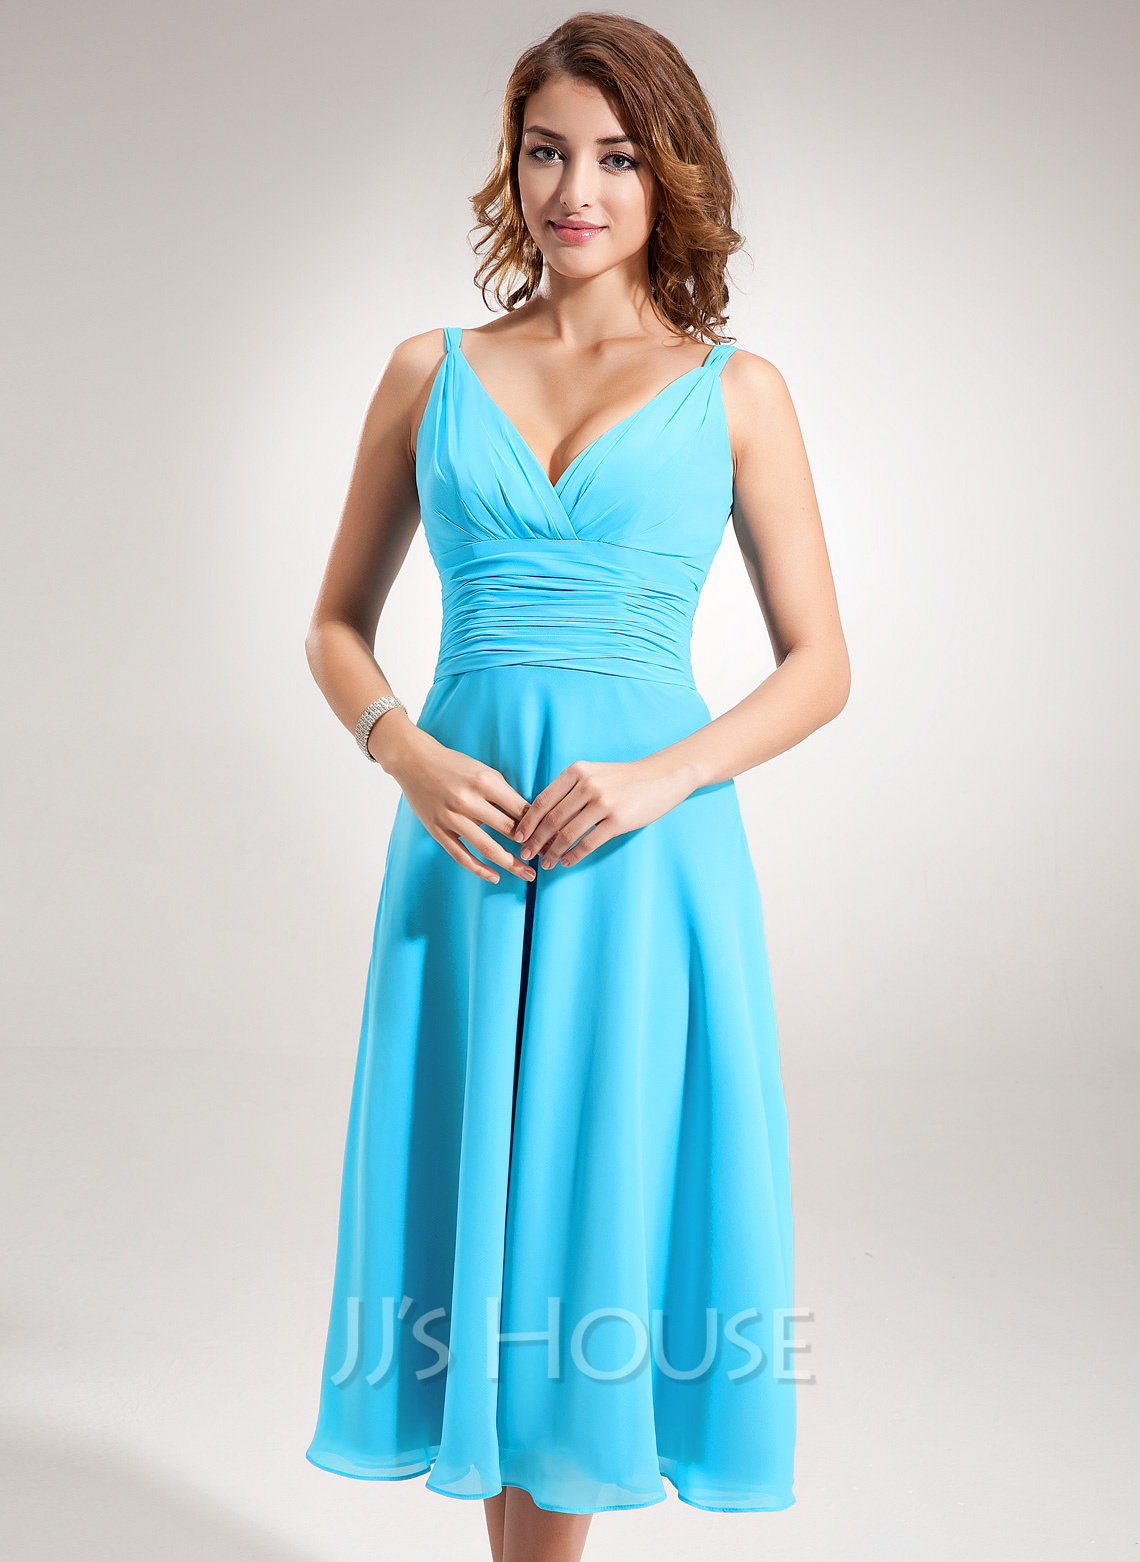 V-neck Tea-Length Chiffon Bridesmaid Dress